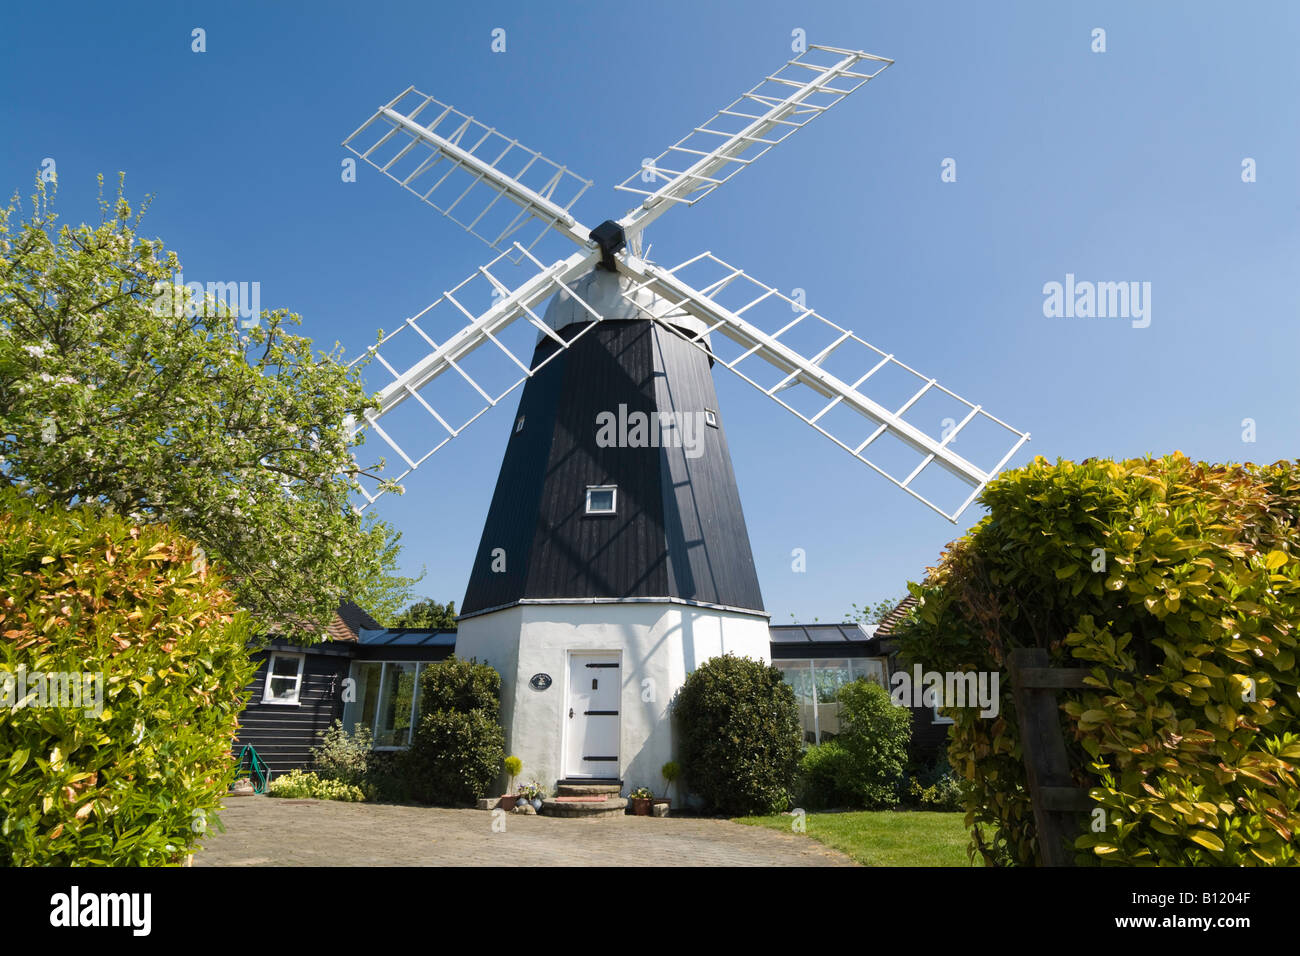 Smock Tower Windmill, Swaffham Prior, Cambridgeshire - an example of a windmill which has been converted into a - Stock Image